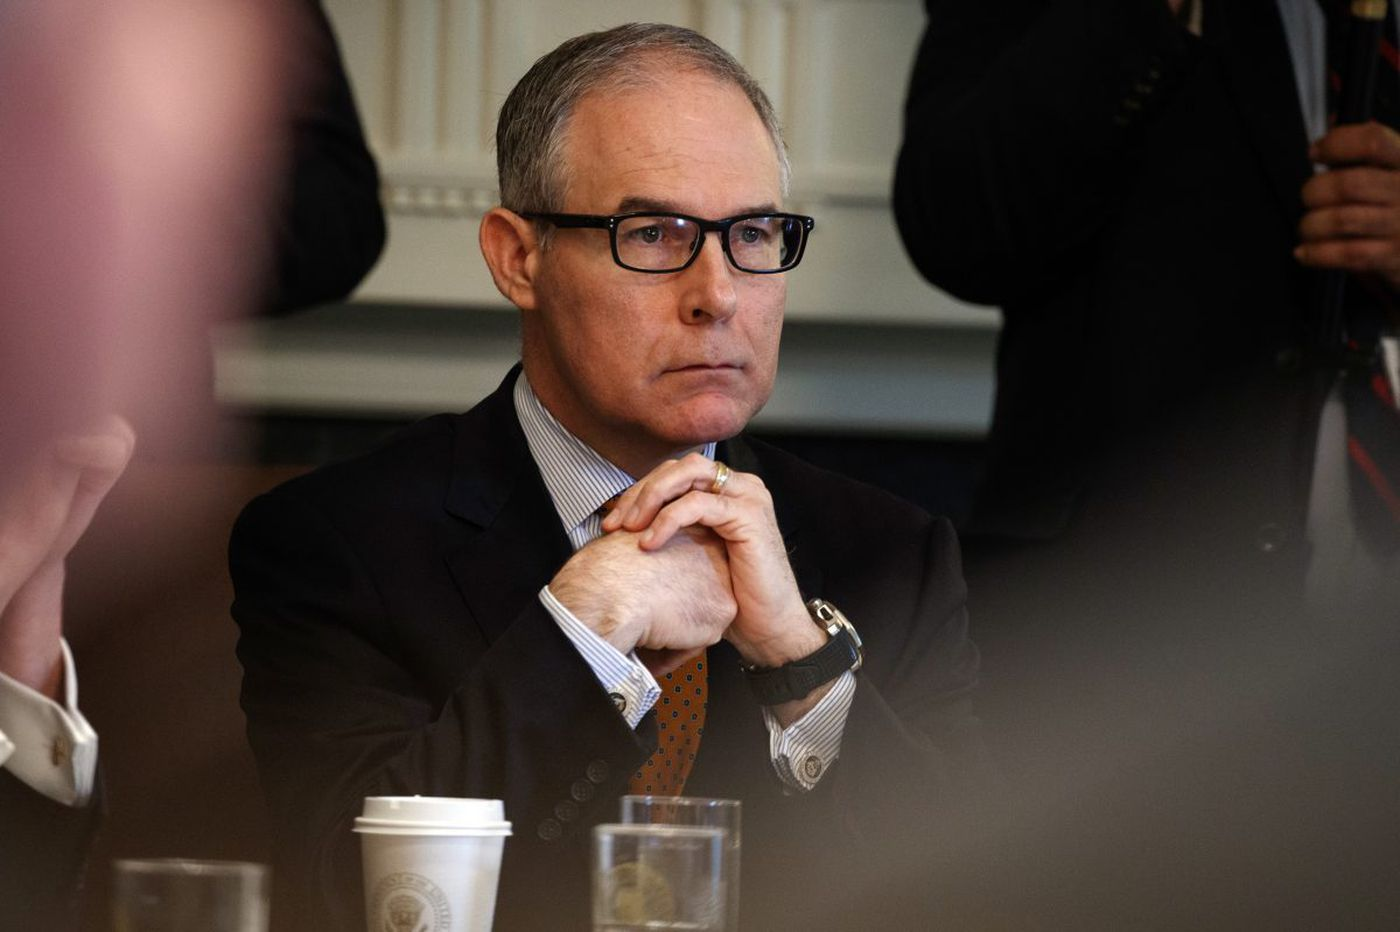 Days after Pruitt resigned, several aides also calling it quits at EPA